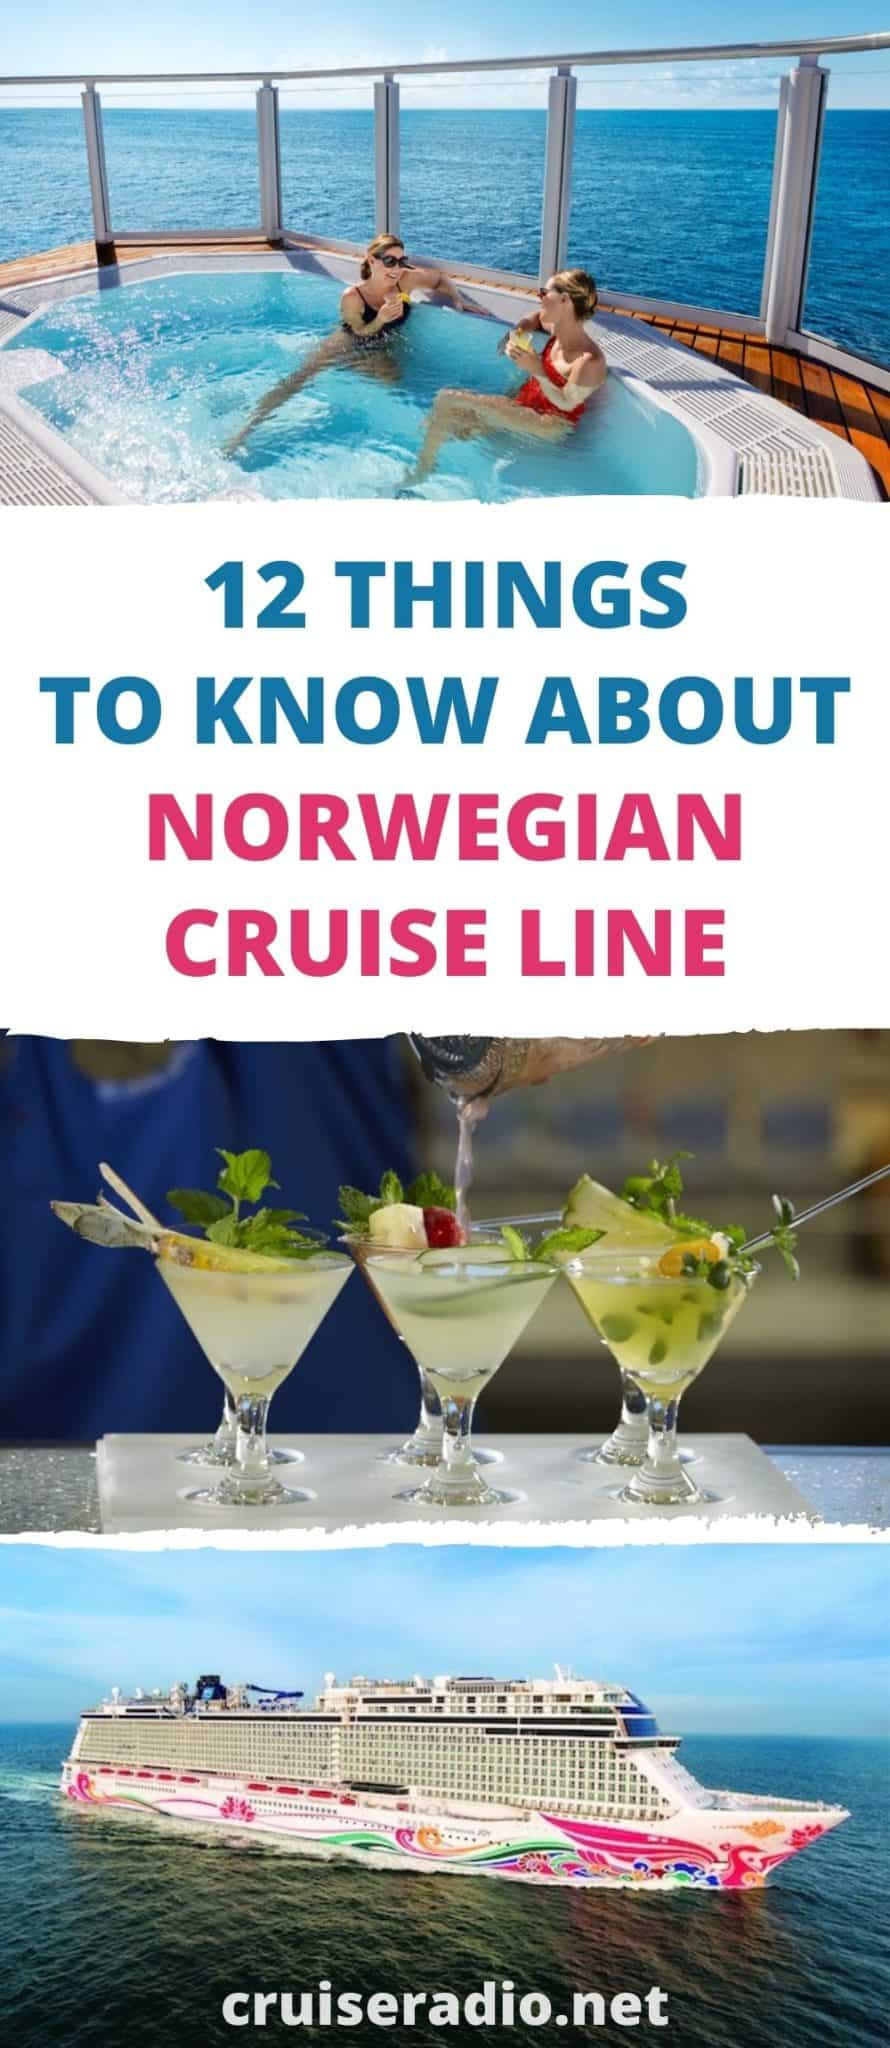 12 things to know about Norwegian cruise line